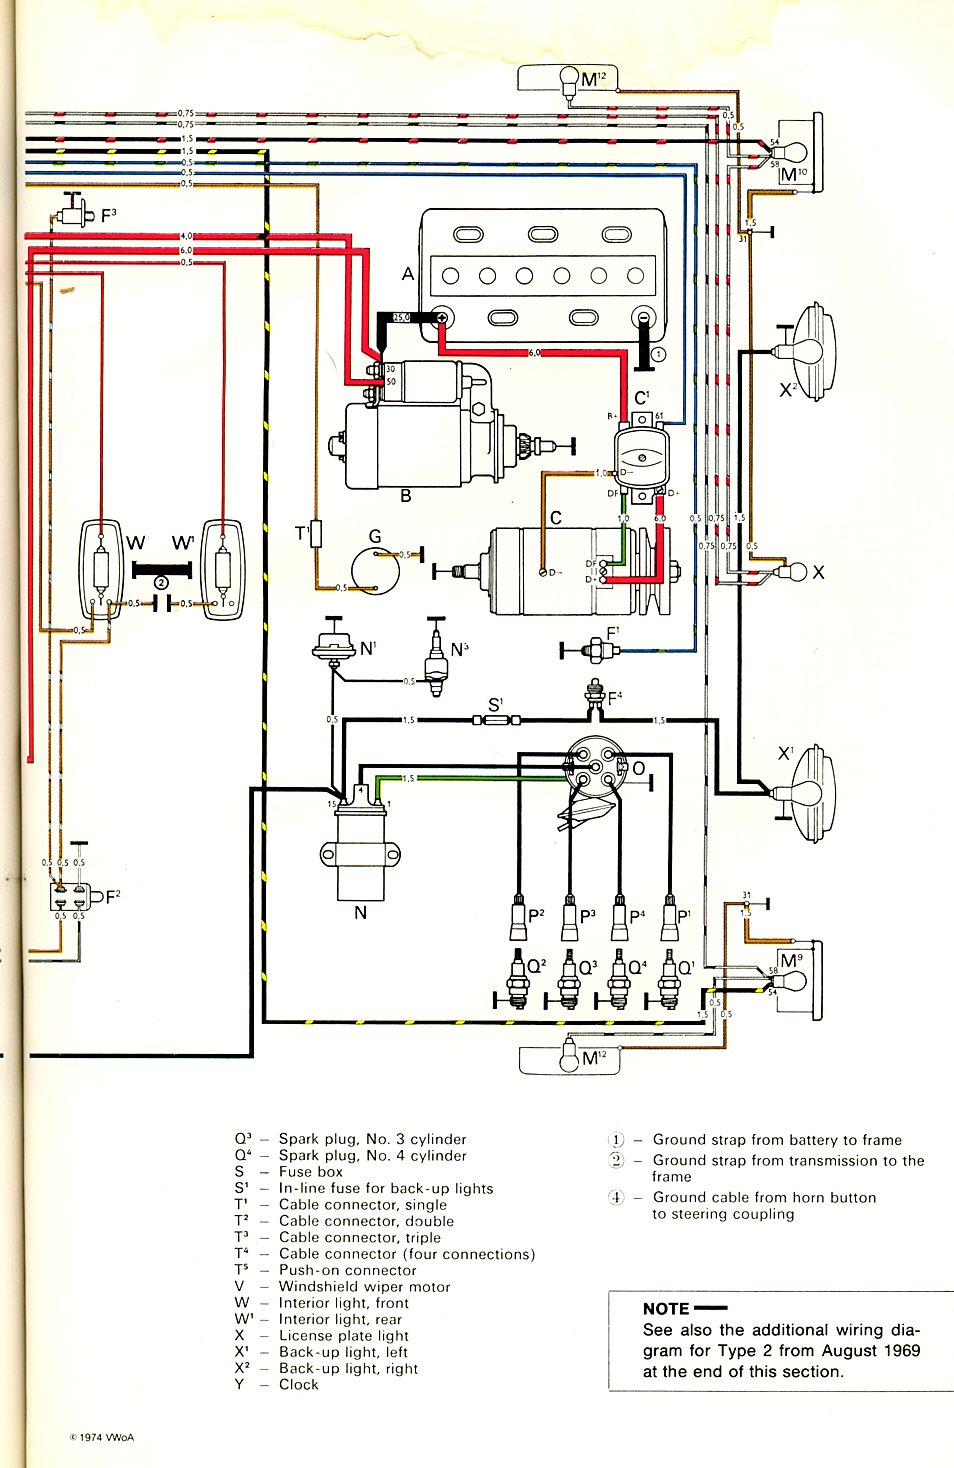 Type 2 Wiring Diagrams 1974 Firebird Wiper Diagram Free Download